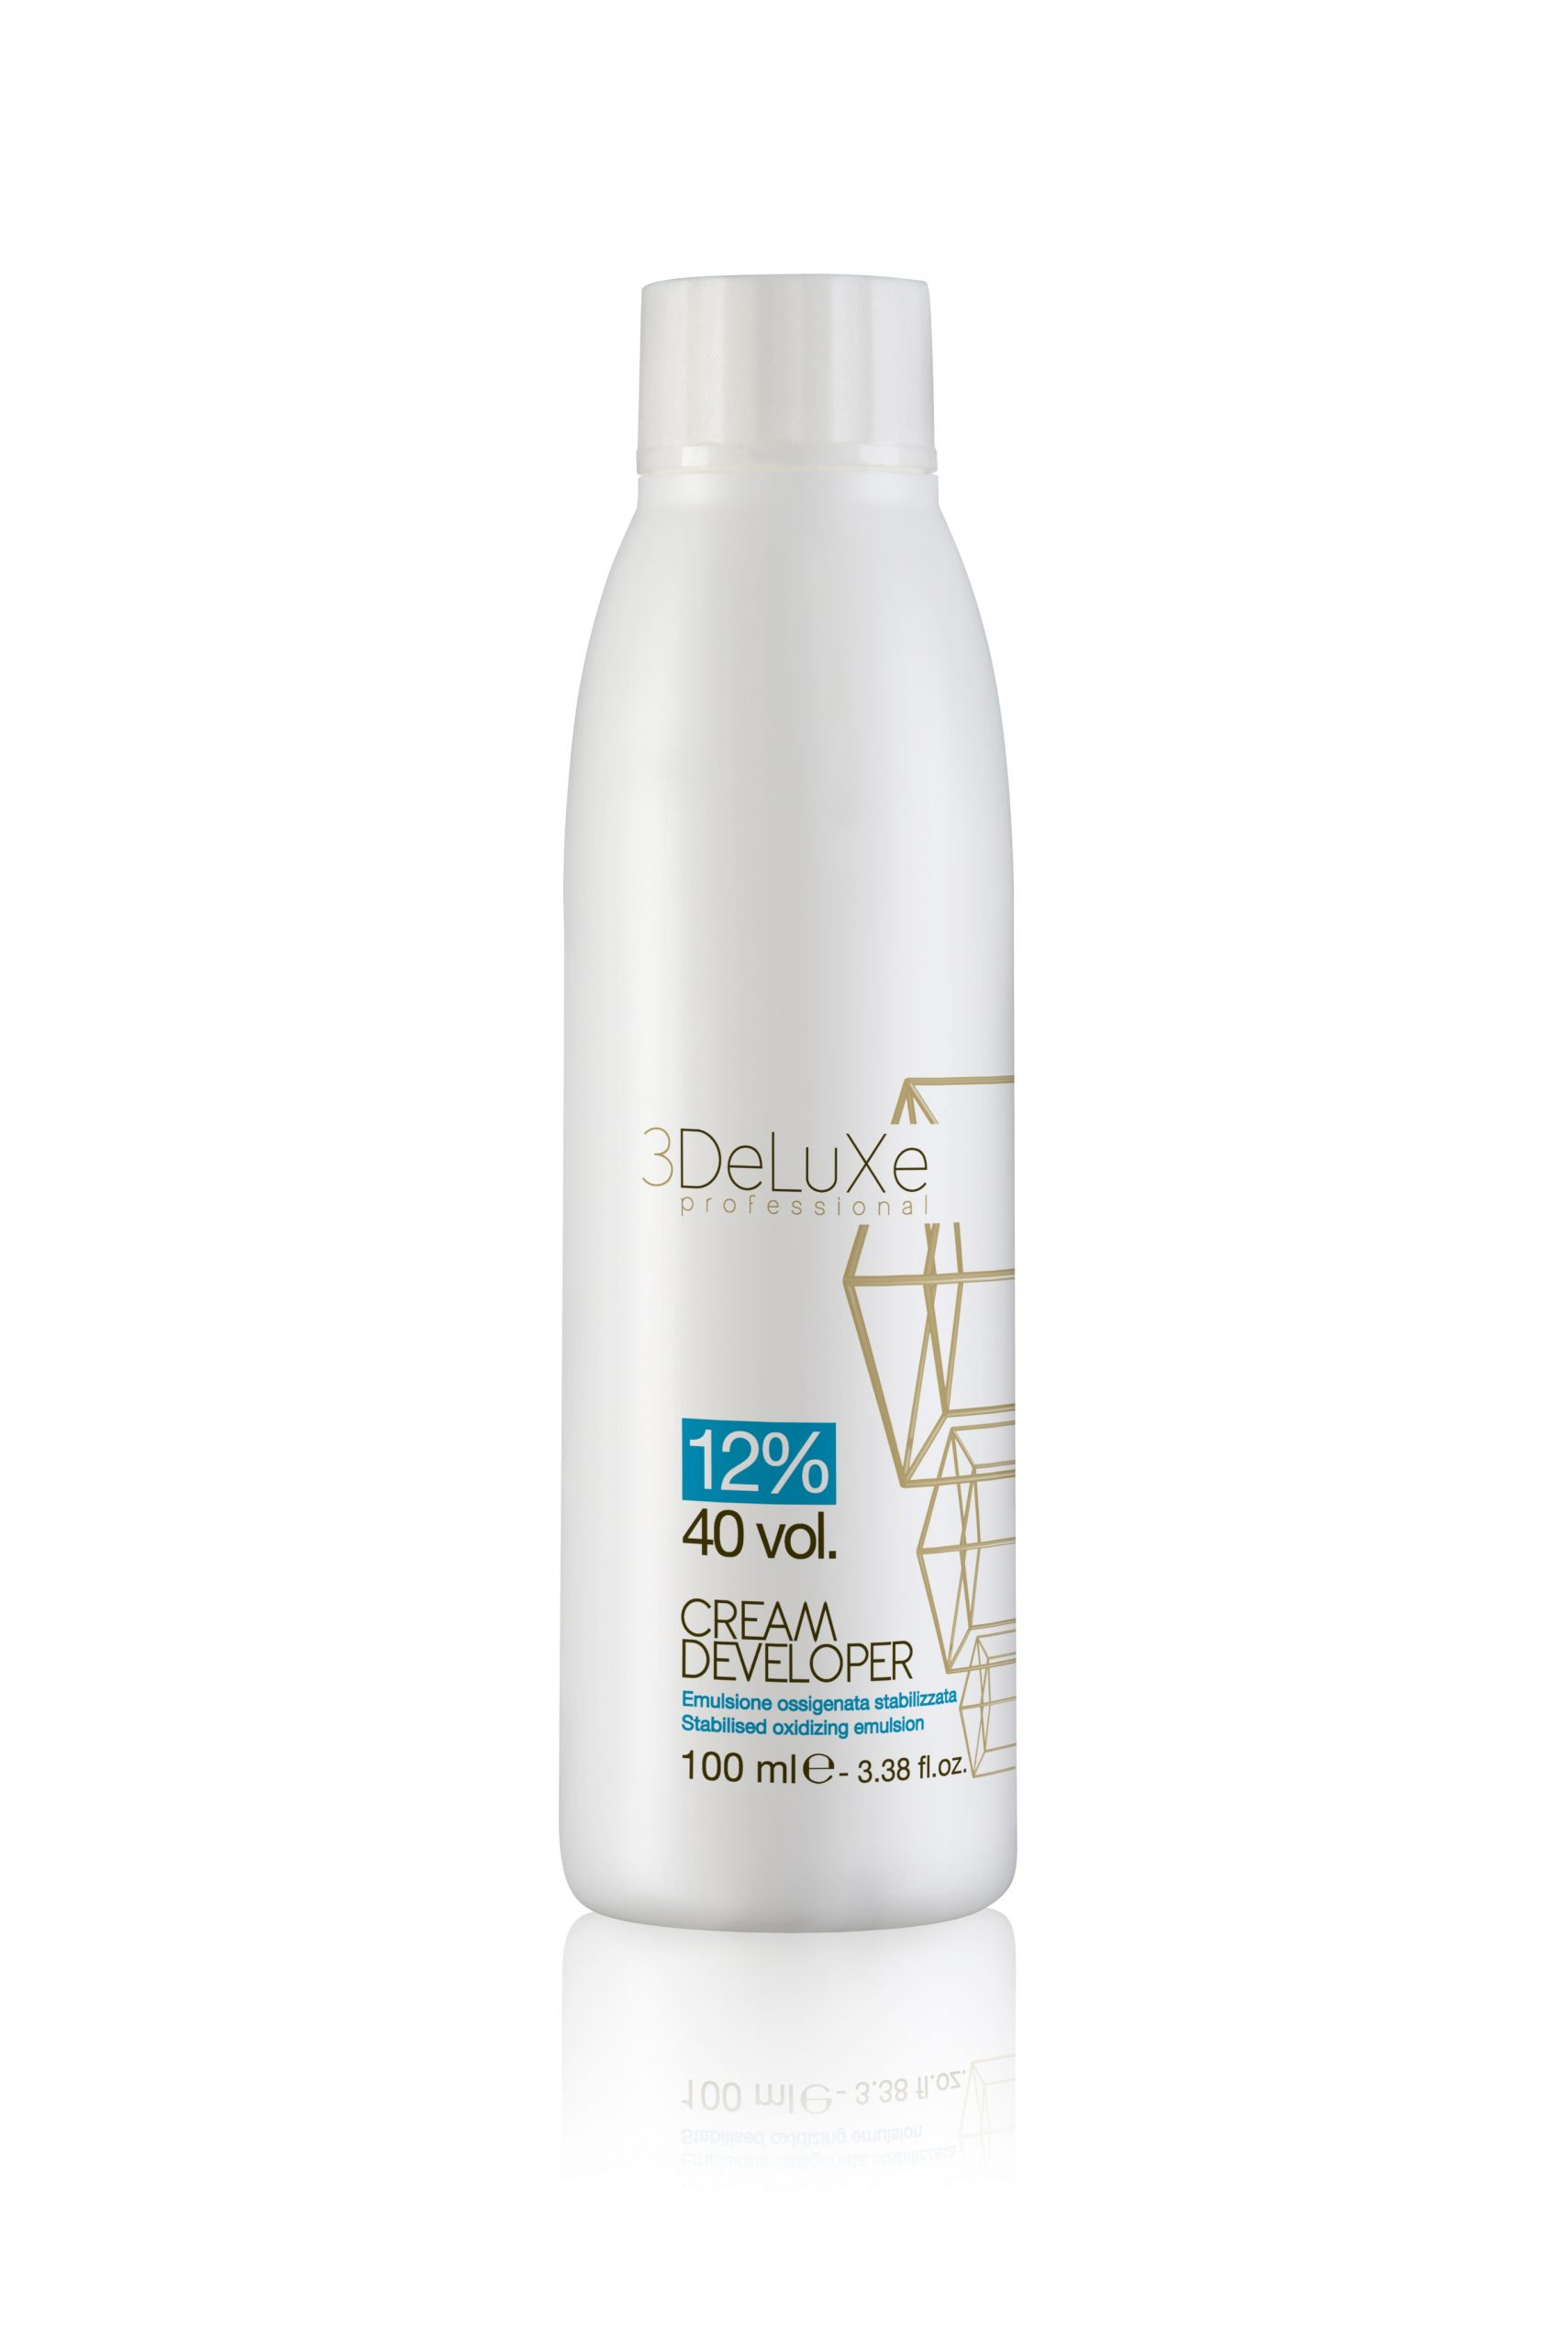 3DeLuXe Cream developer 12% 40vol – 100 ml